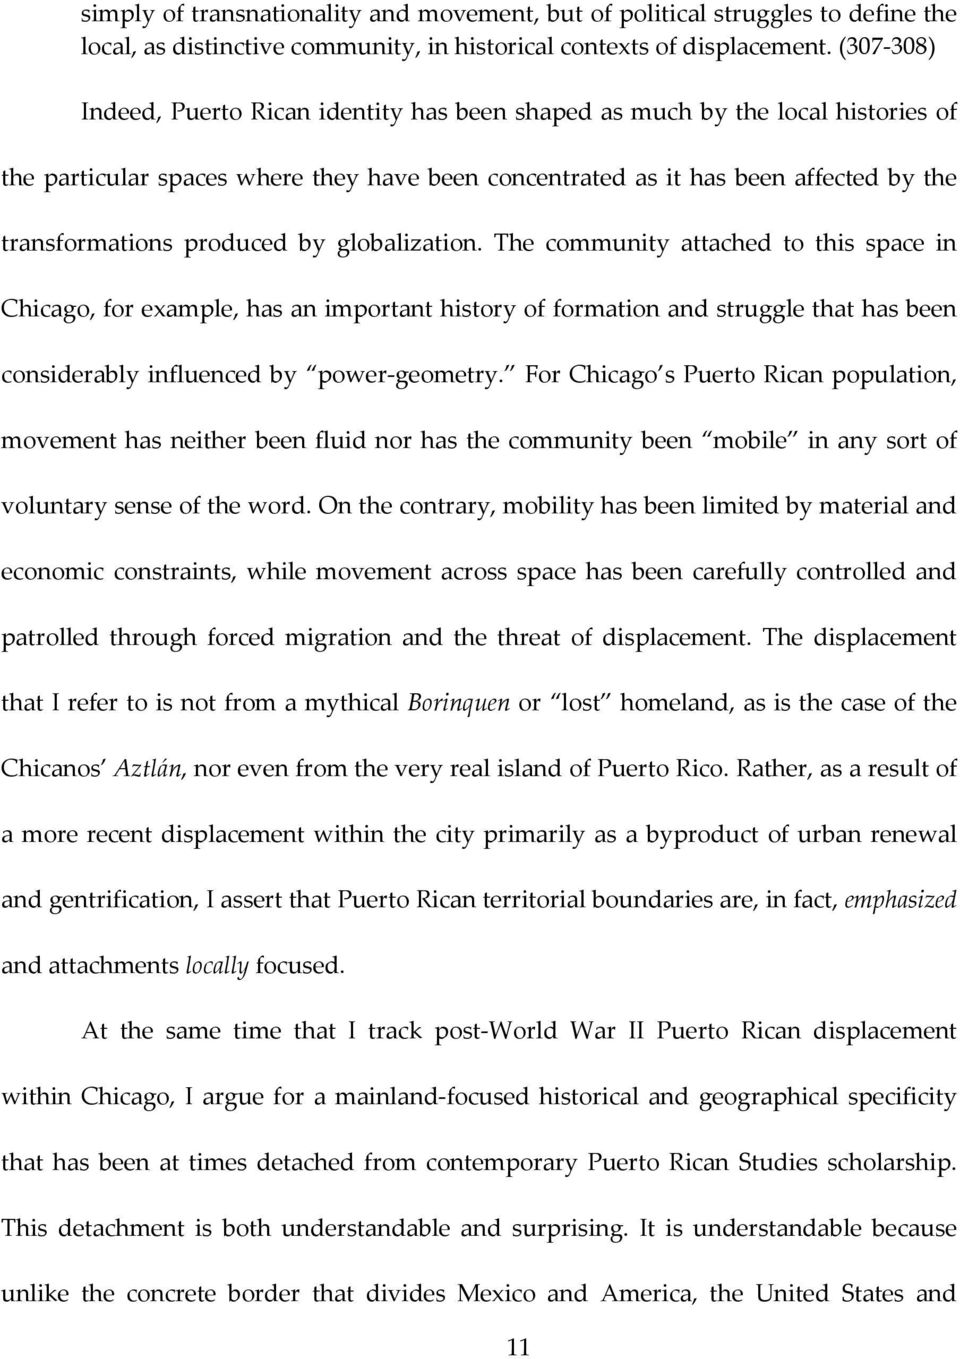 produced by globalization. The community attached to this space in Chicago, for example, has an important history of formation and struggle that has been considerably influenced by power-geometry.